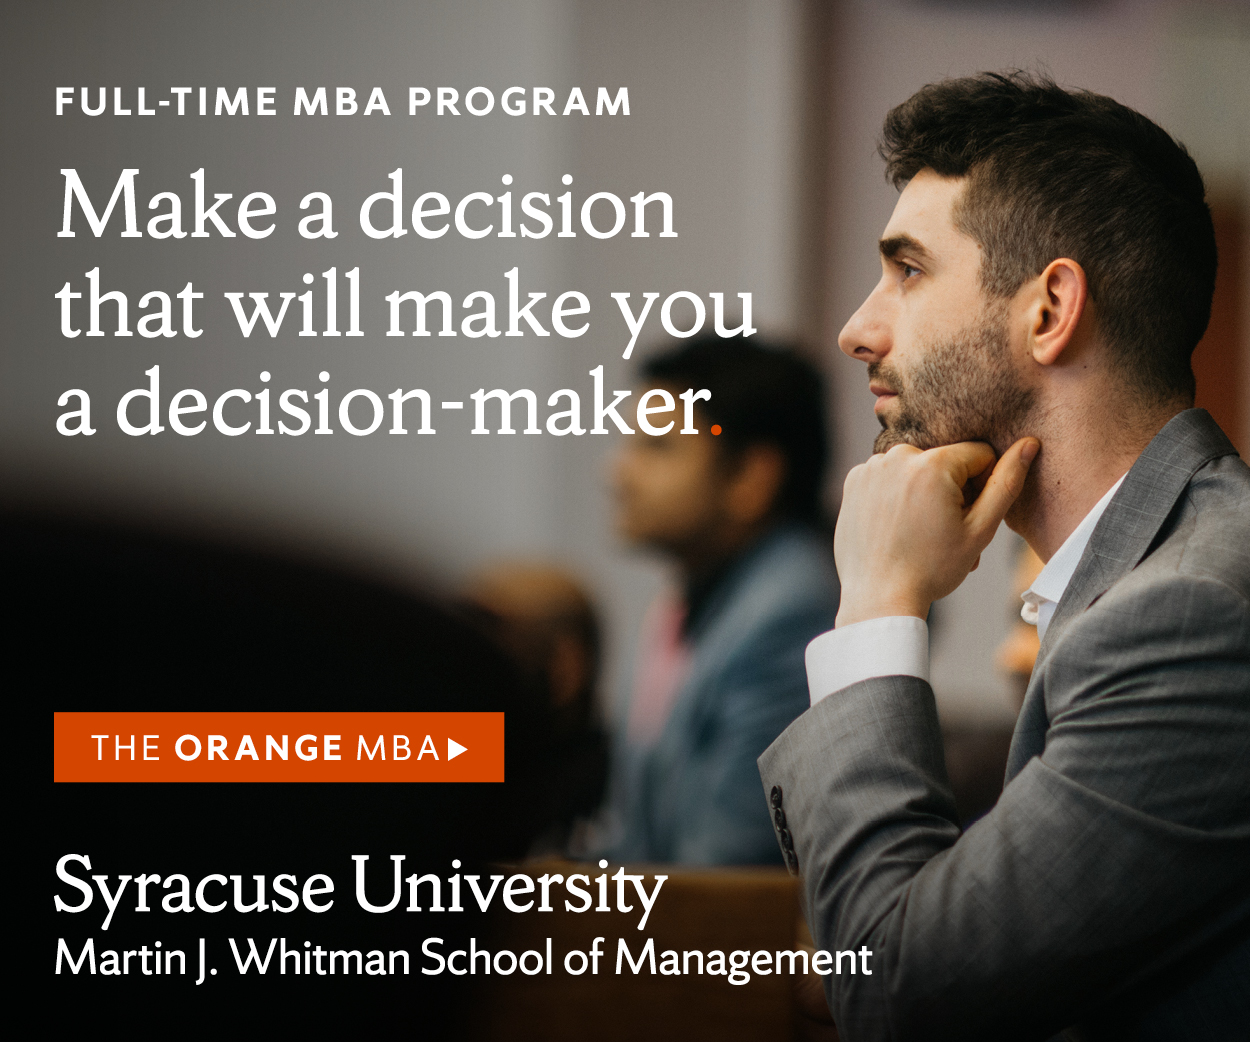 Whitman 2018 - Decision-Maker v2 - 300x250 .jpg